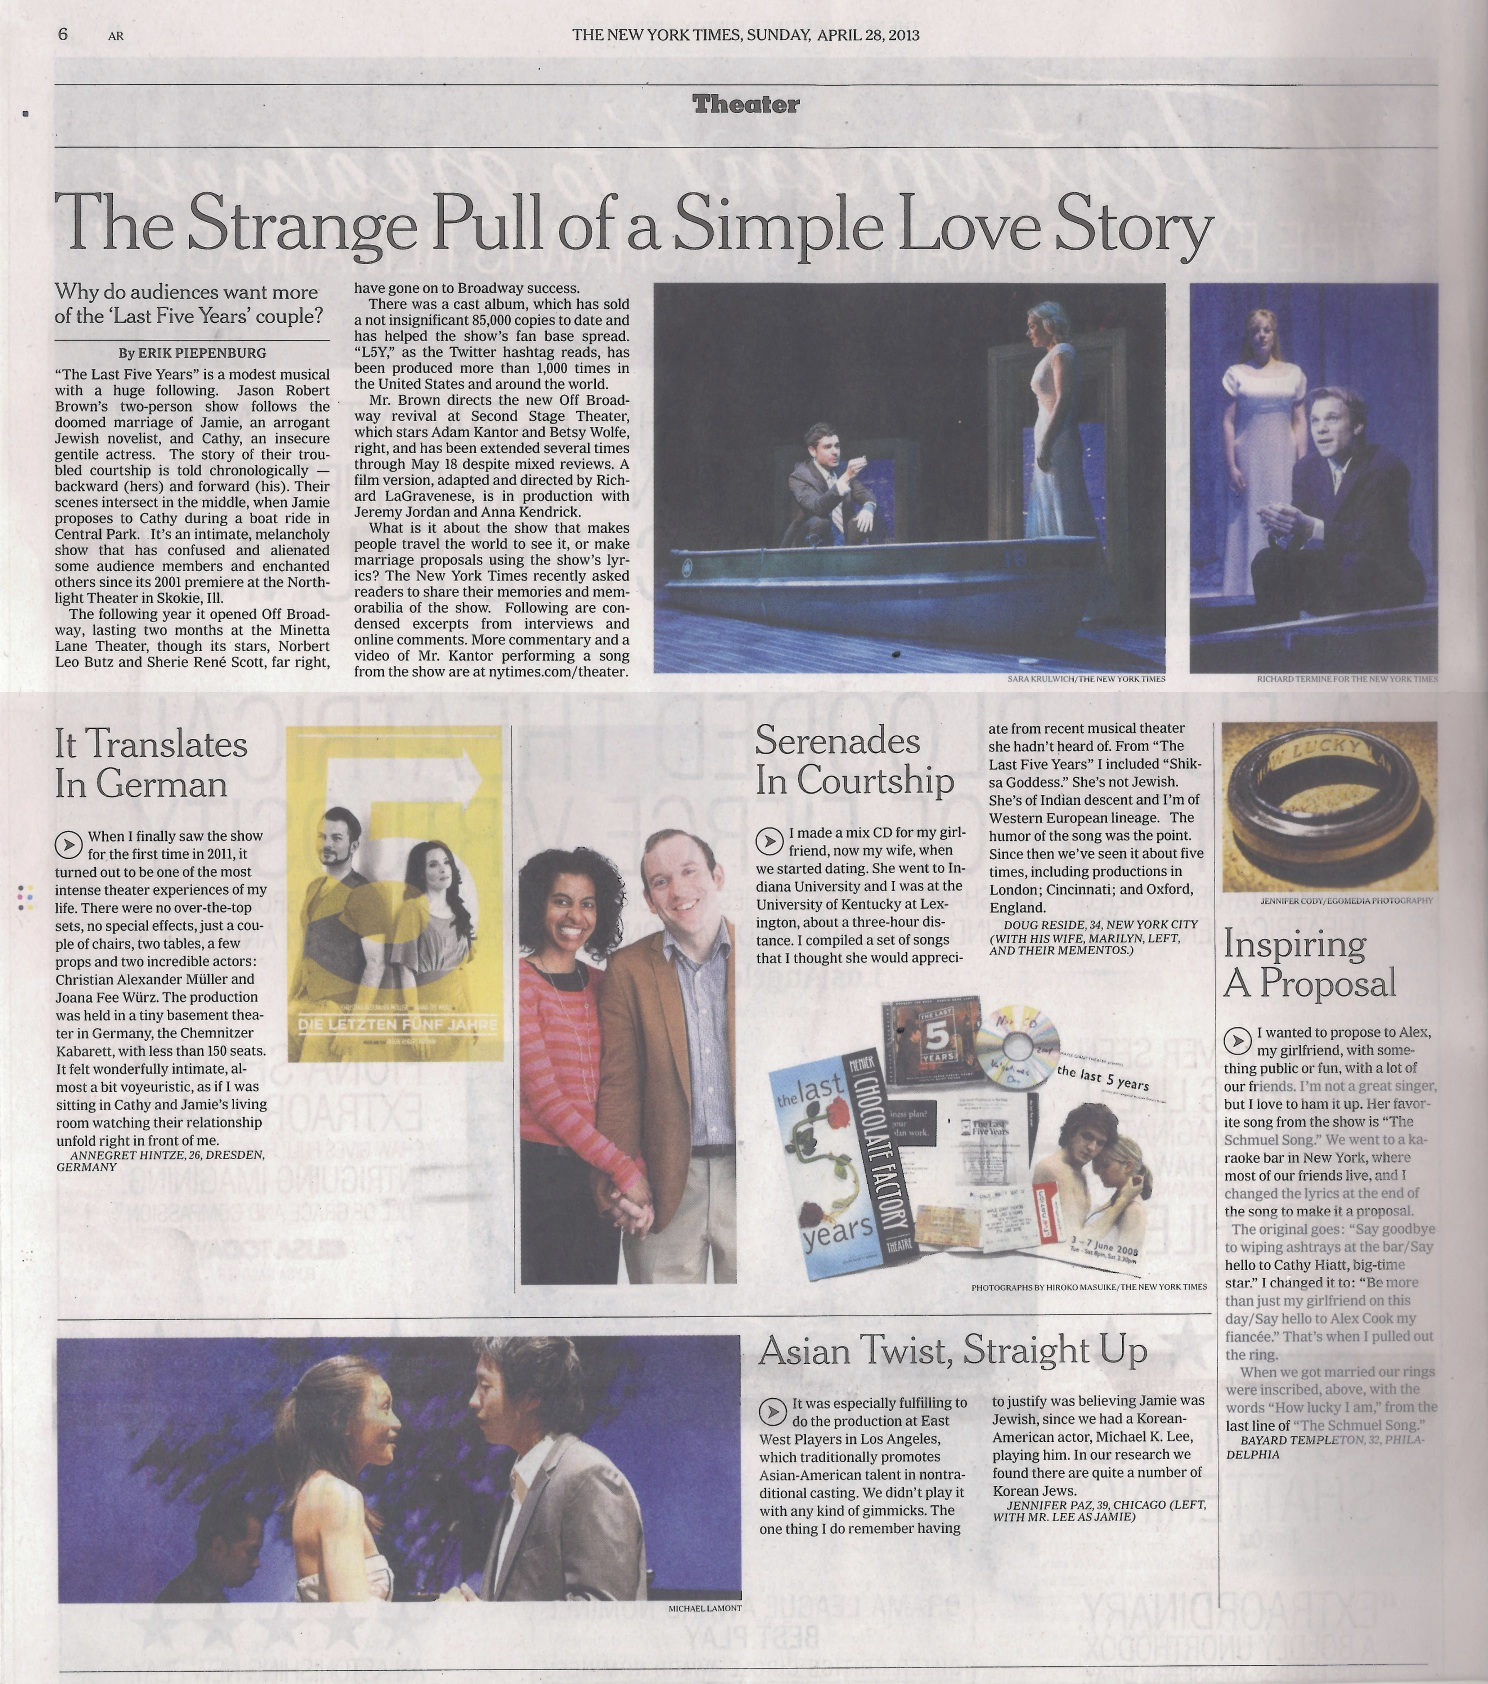 THE LAST FIVE YEARS_NYTimes 4-28-13